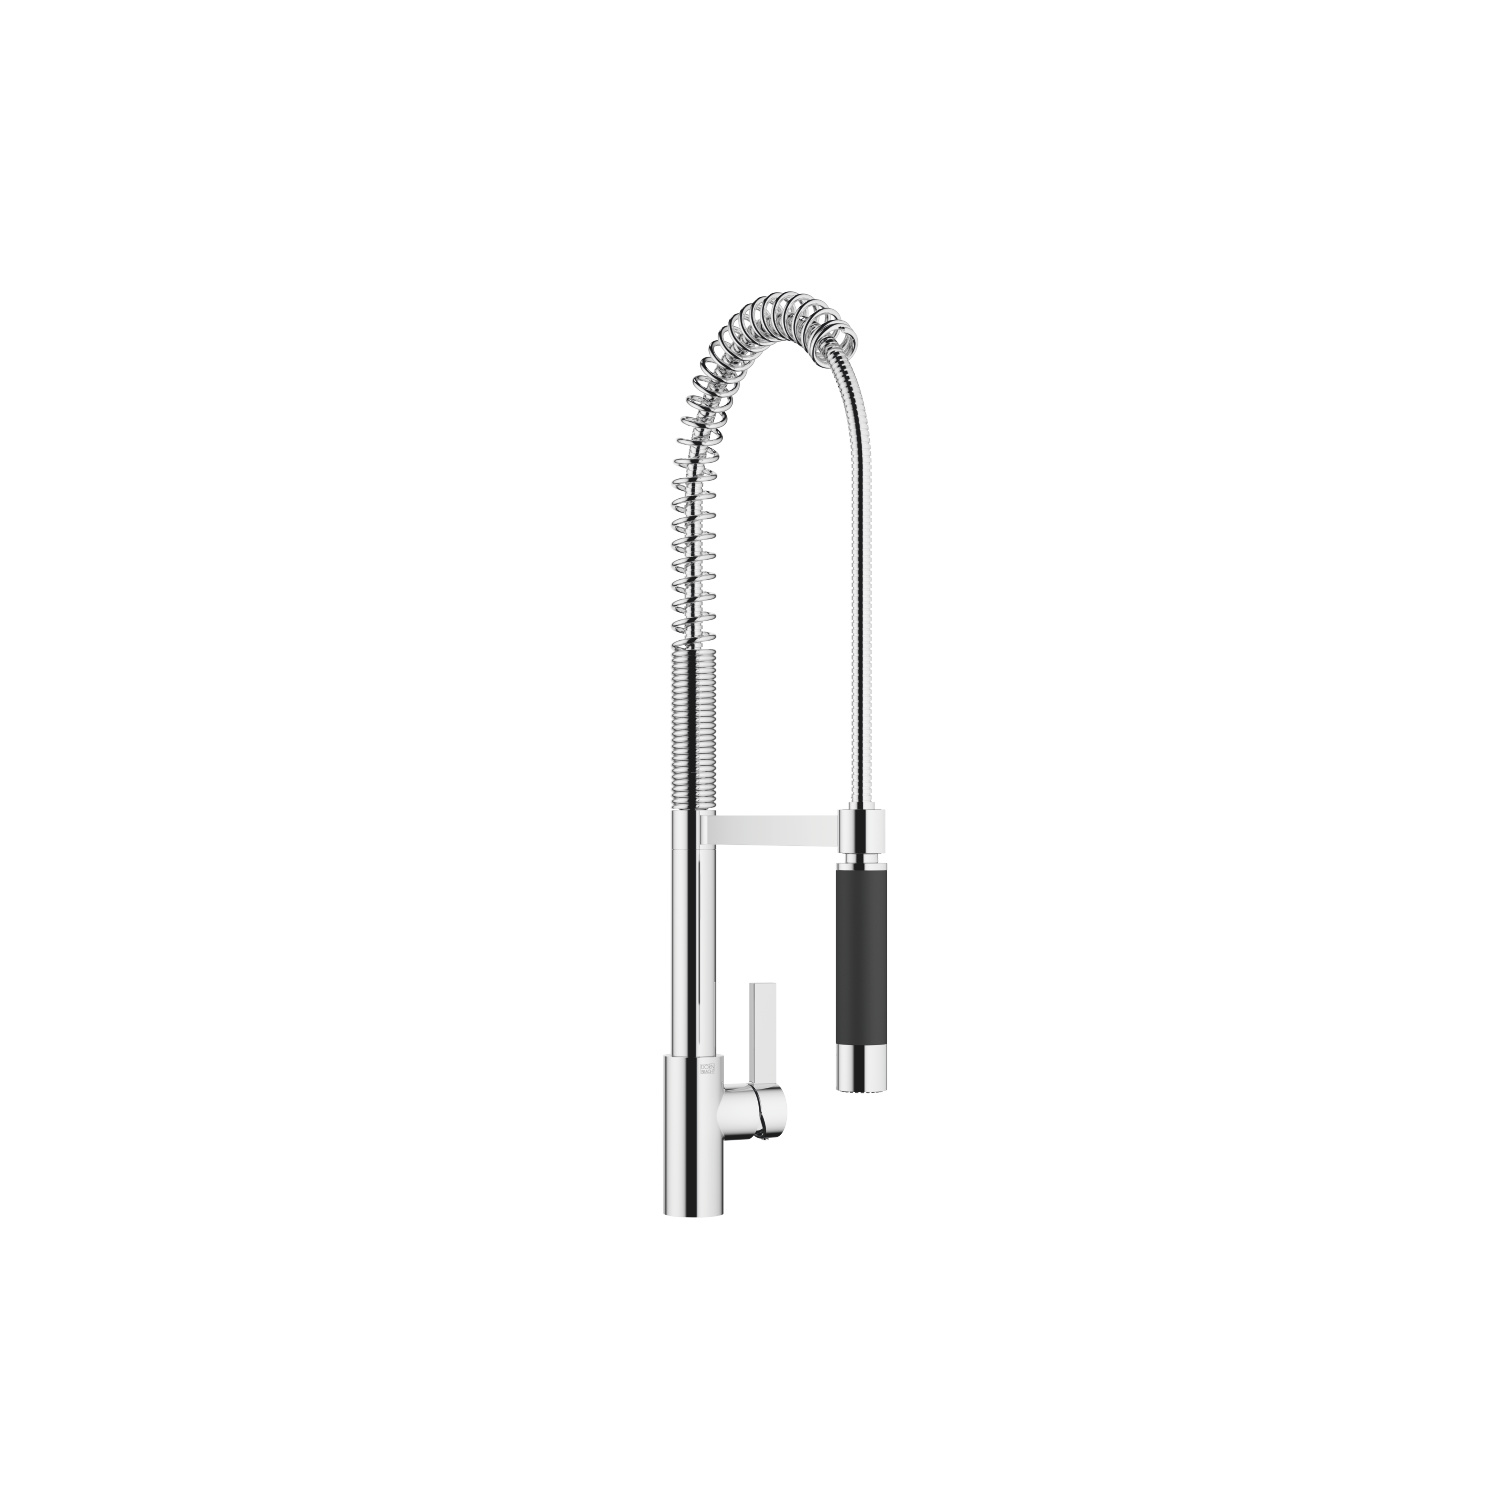 Profi single-lever mixer - polished chrome